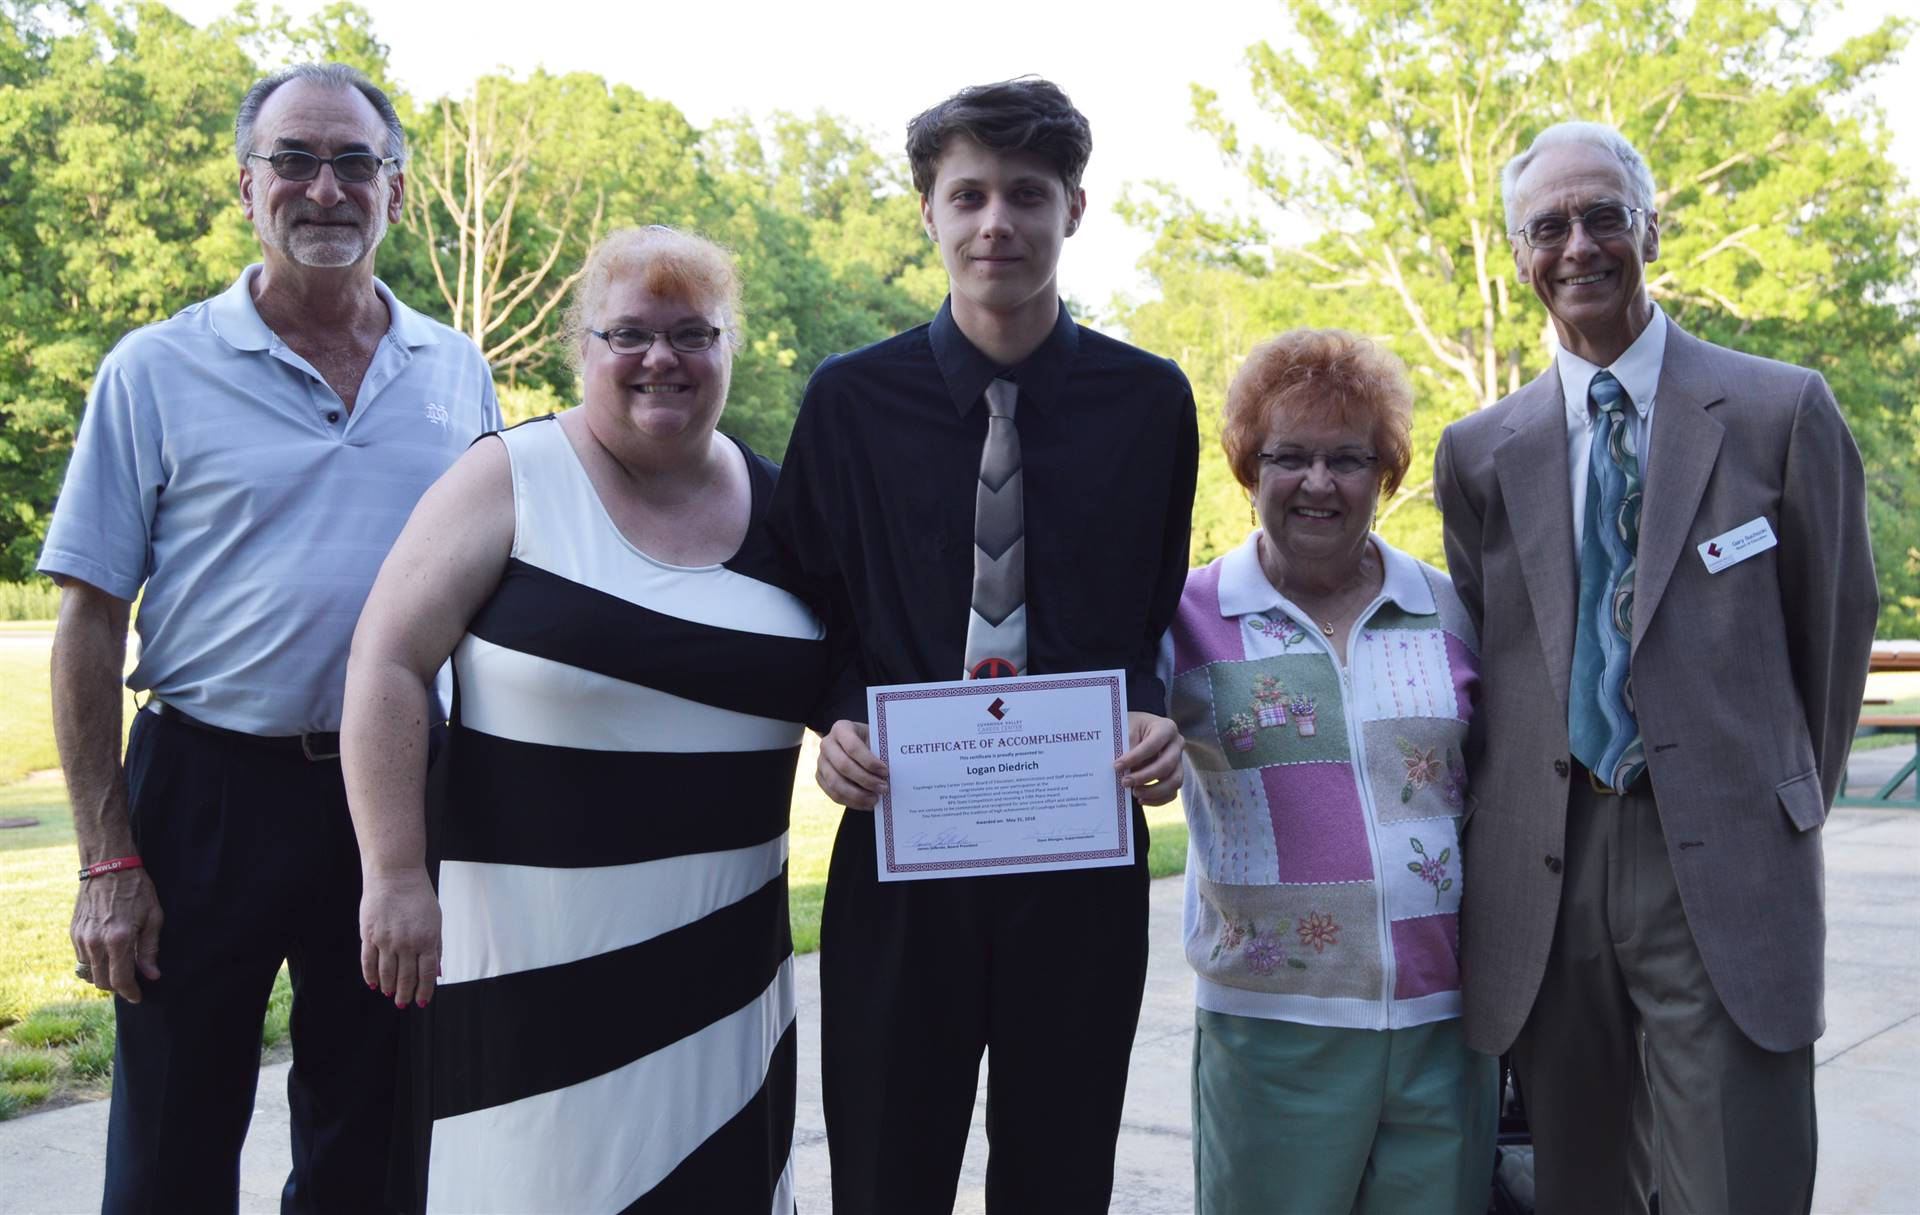 Cuyahoga Heights student, family, and Board members